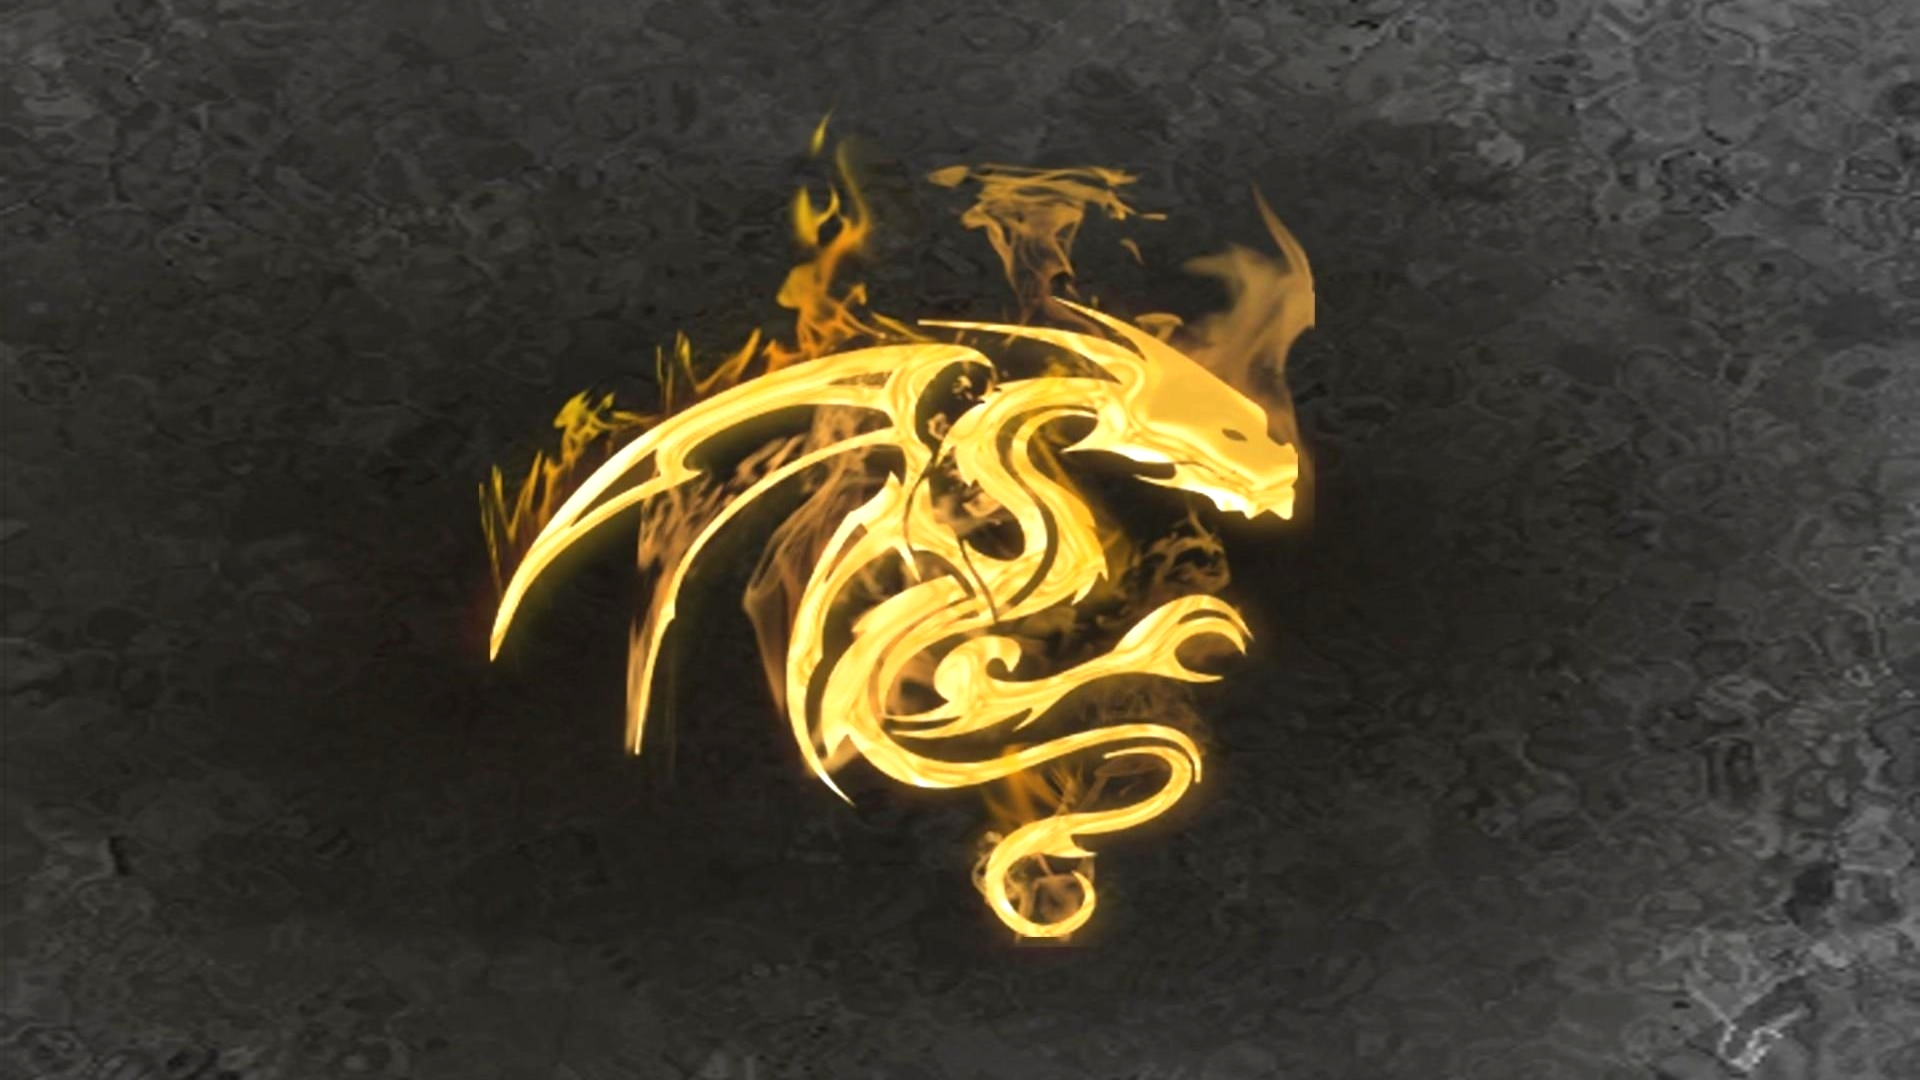 Black And Gold Dragon Wallpaper